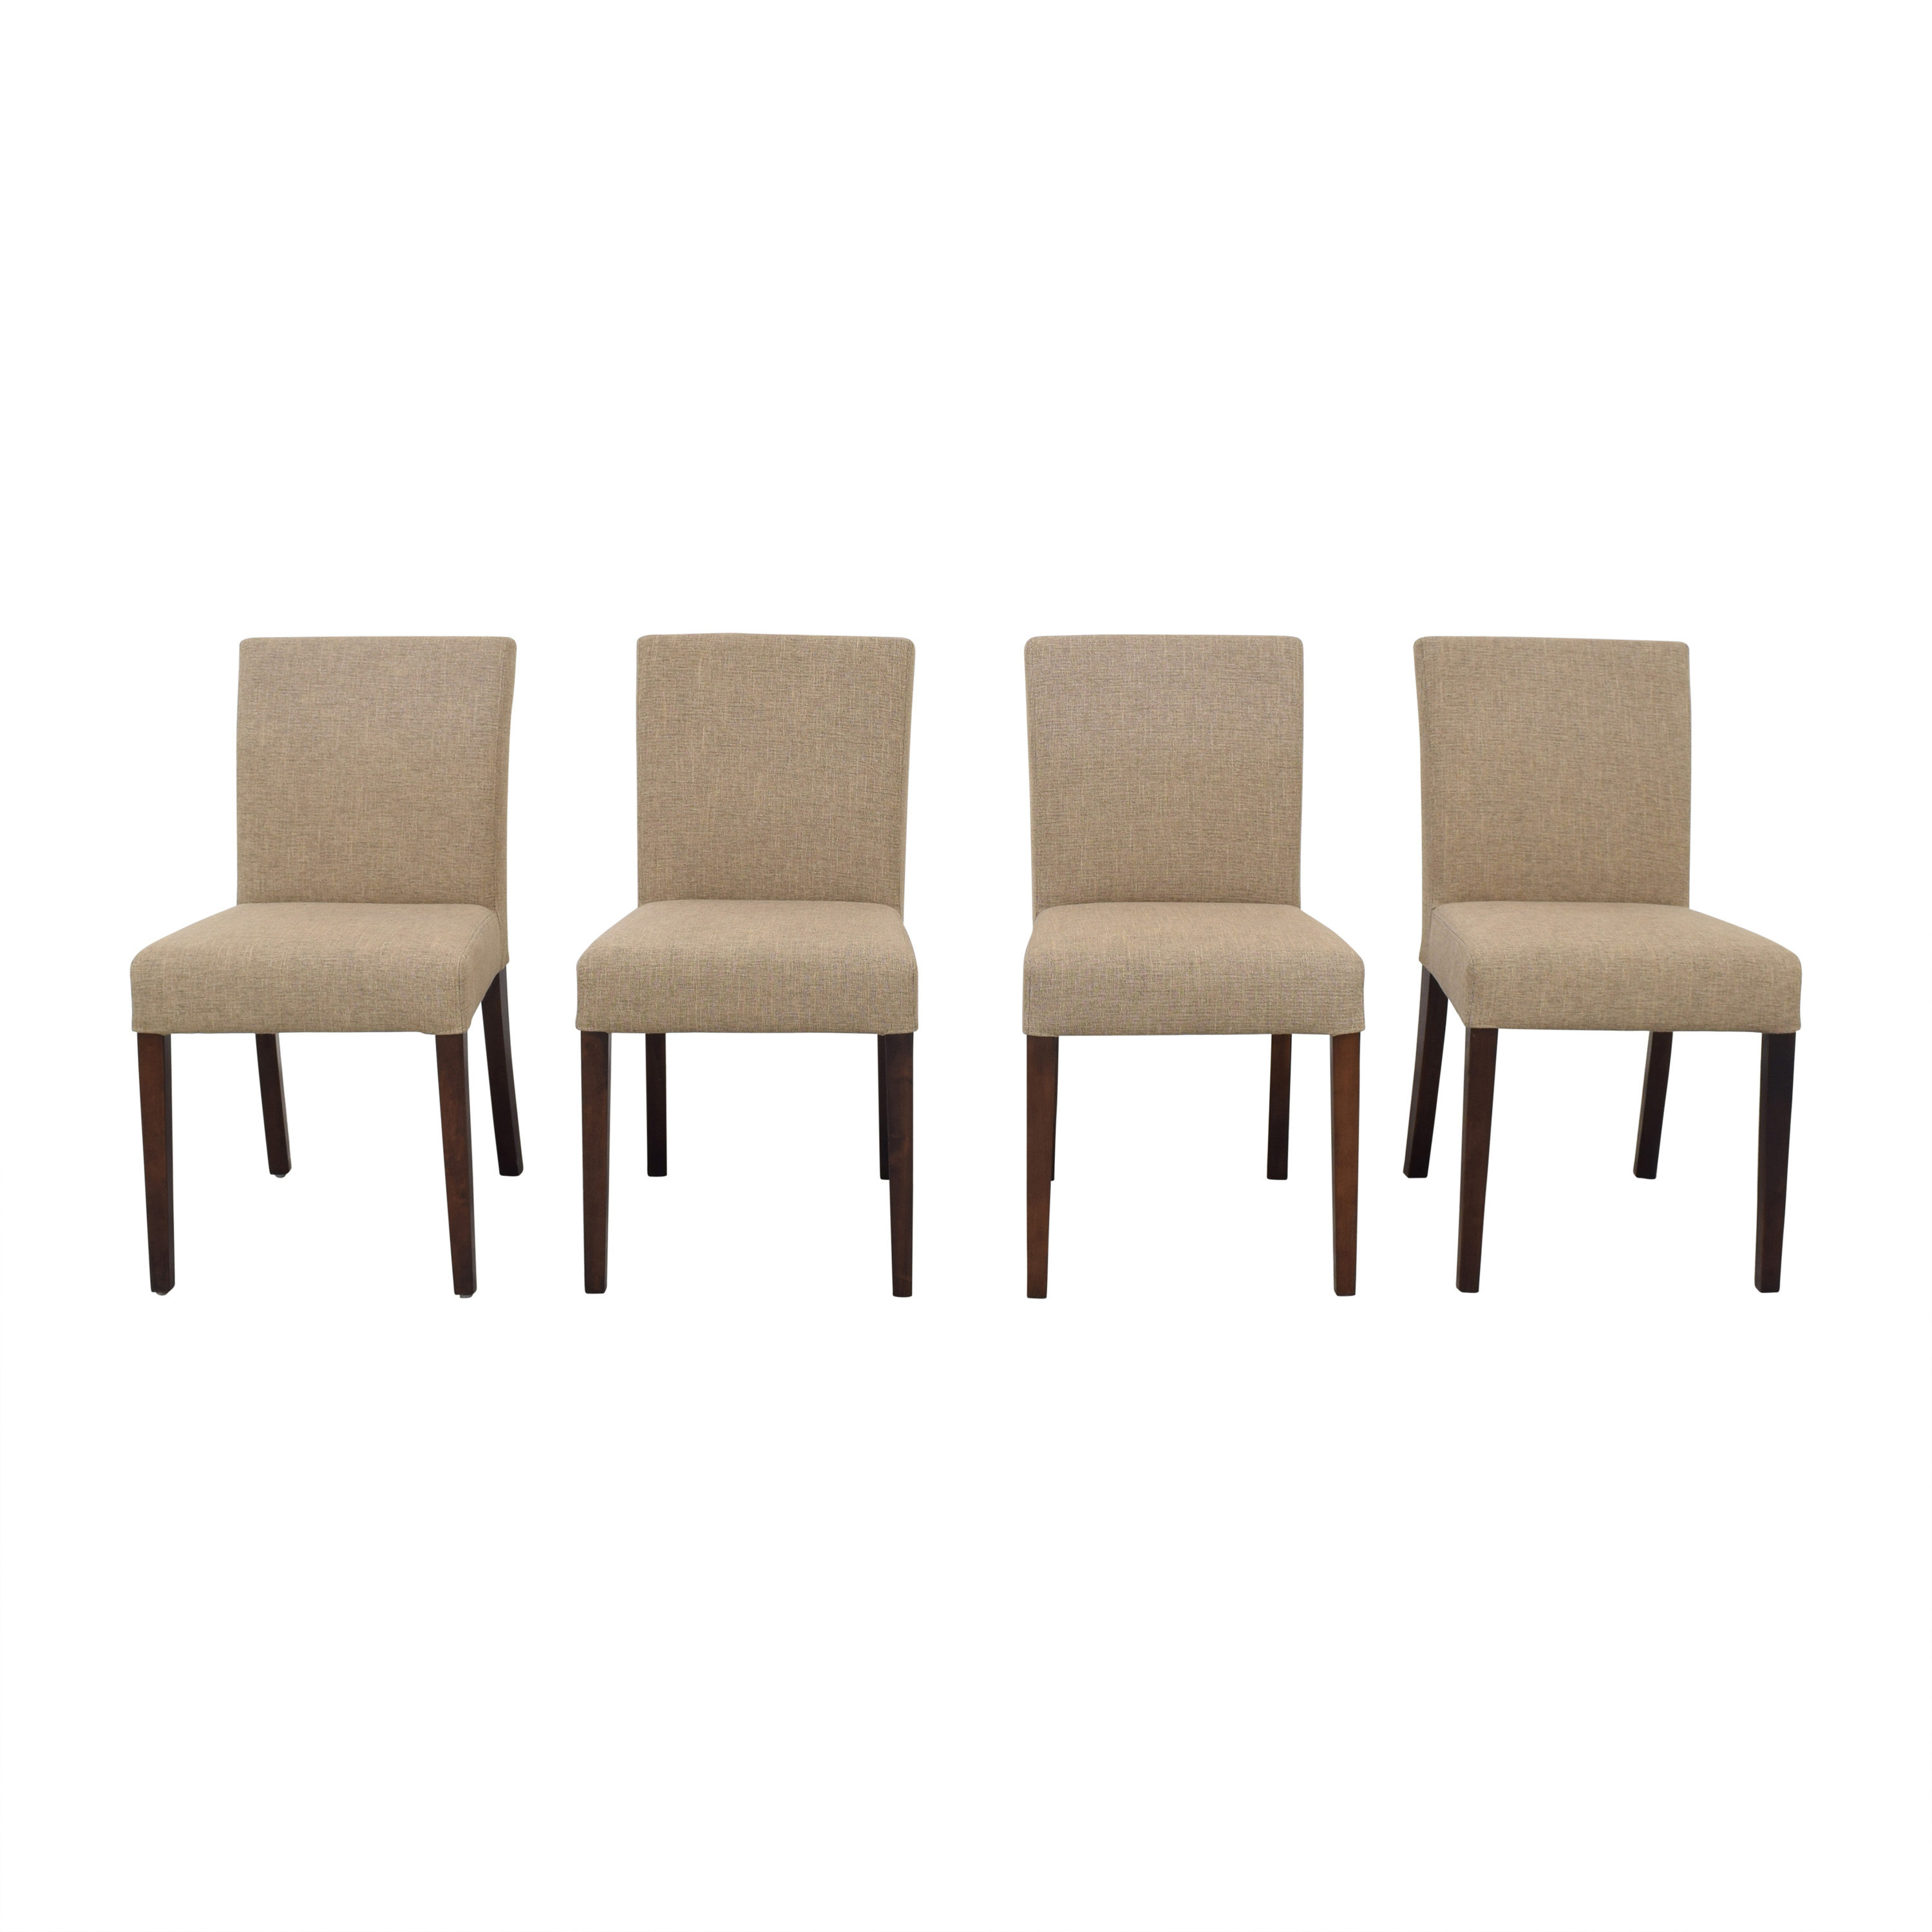 shop Crate & Barrel Lowe Dining Chairs Crate & Barrel Chairs